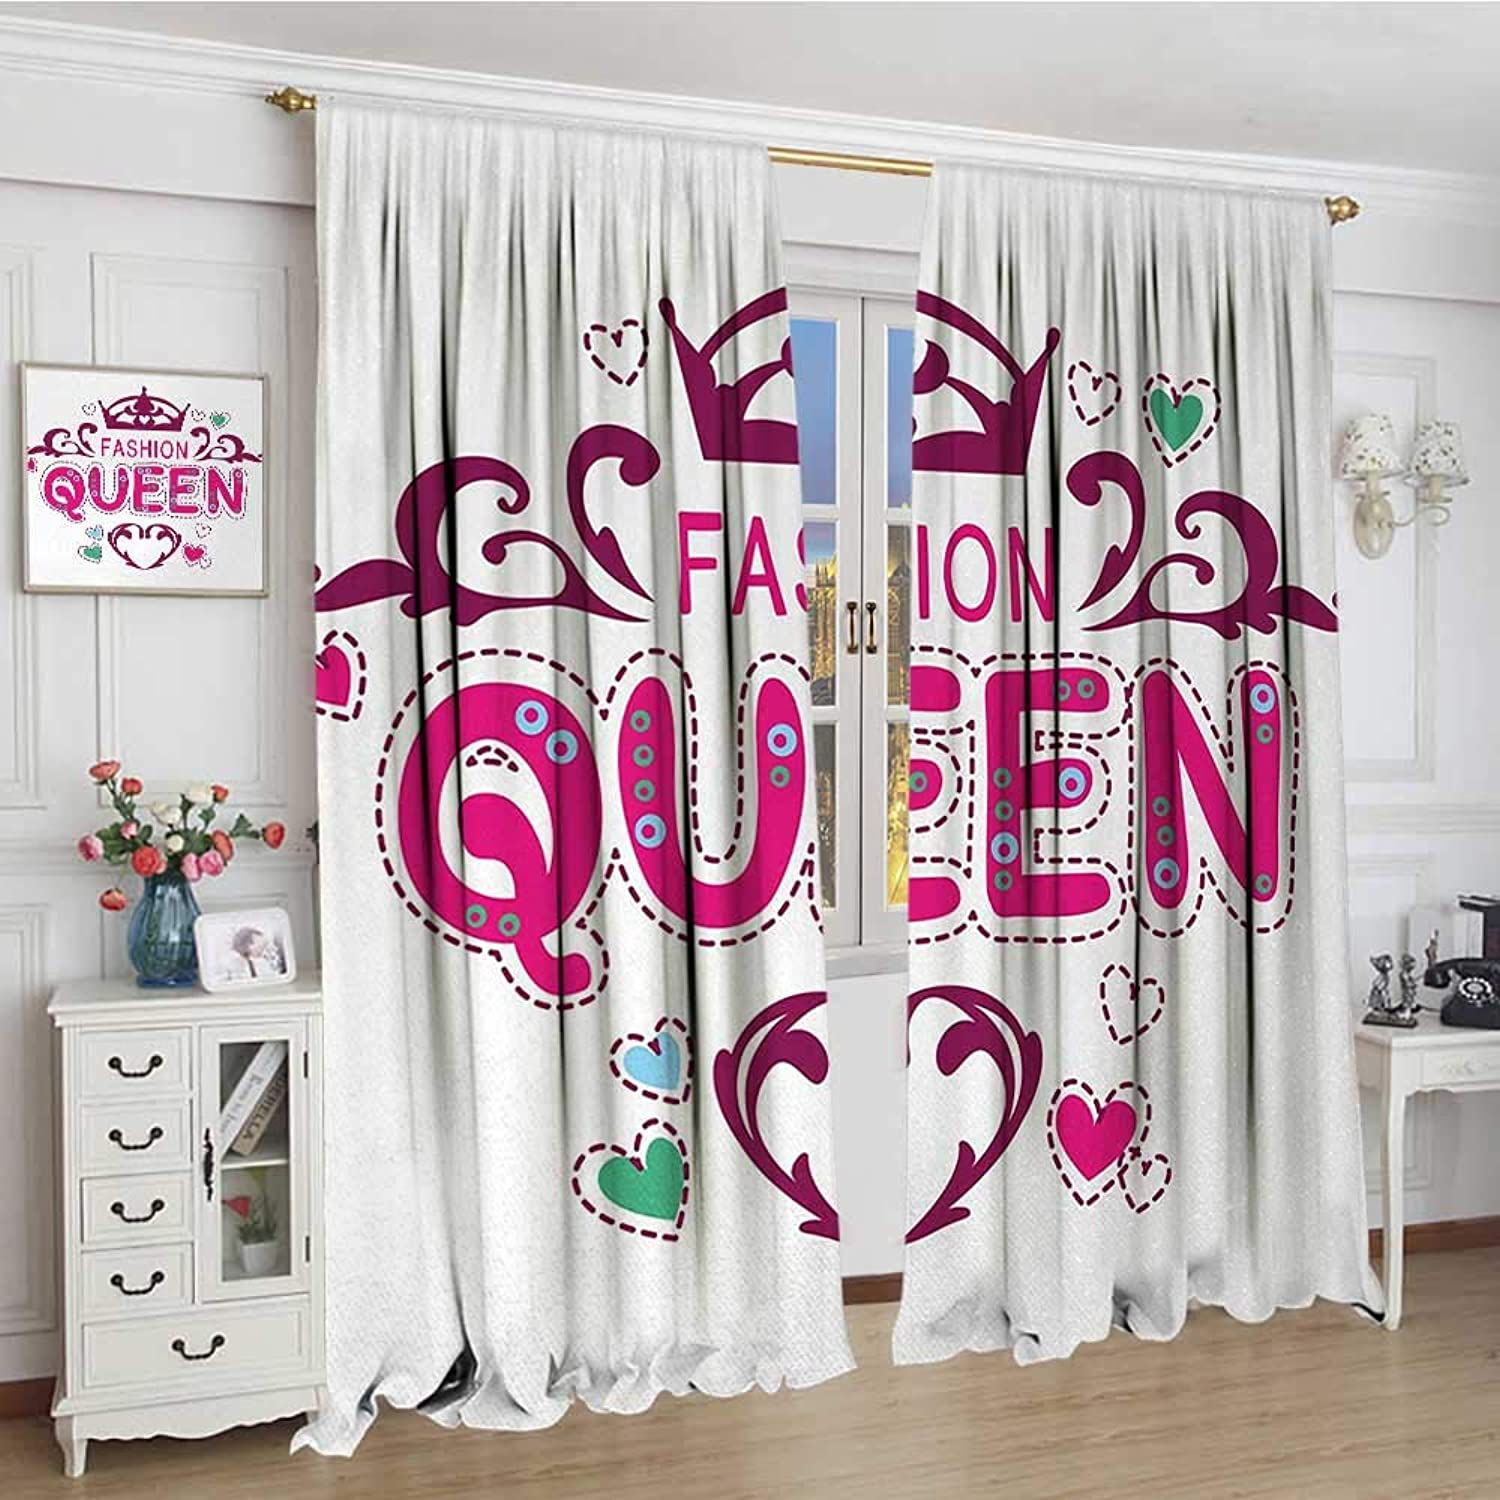 Smallbeefly Queen Window Curtain Drape Girlish Print Fancy Fashion Queen Lettering Floral Heart Shaped Ornaments Cute Waterproof Window Curtain 108 x72  Dried pink Pink